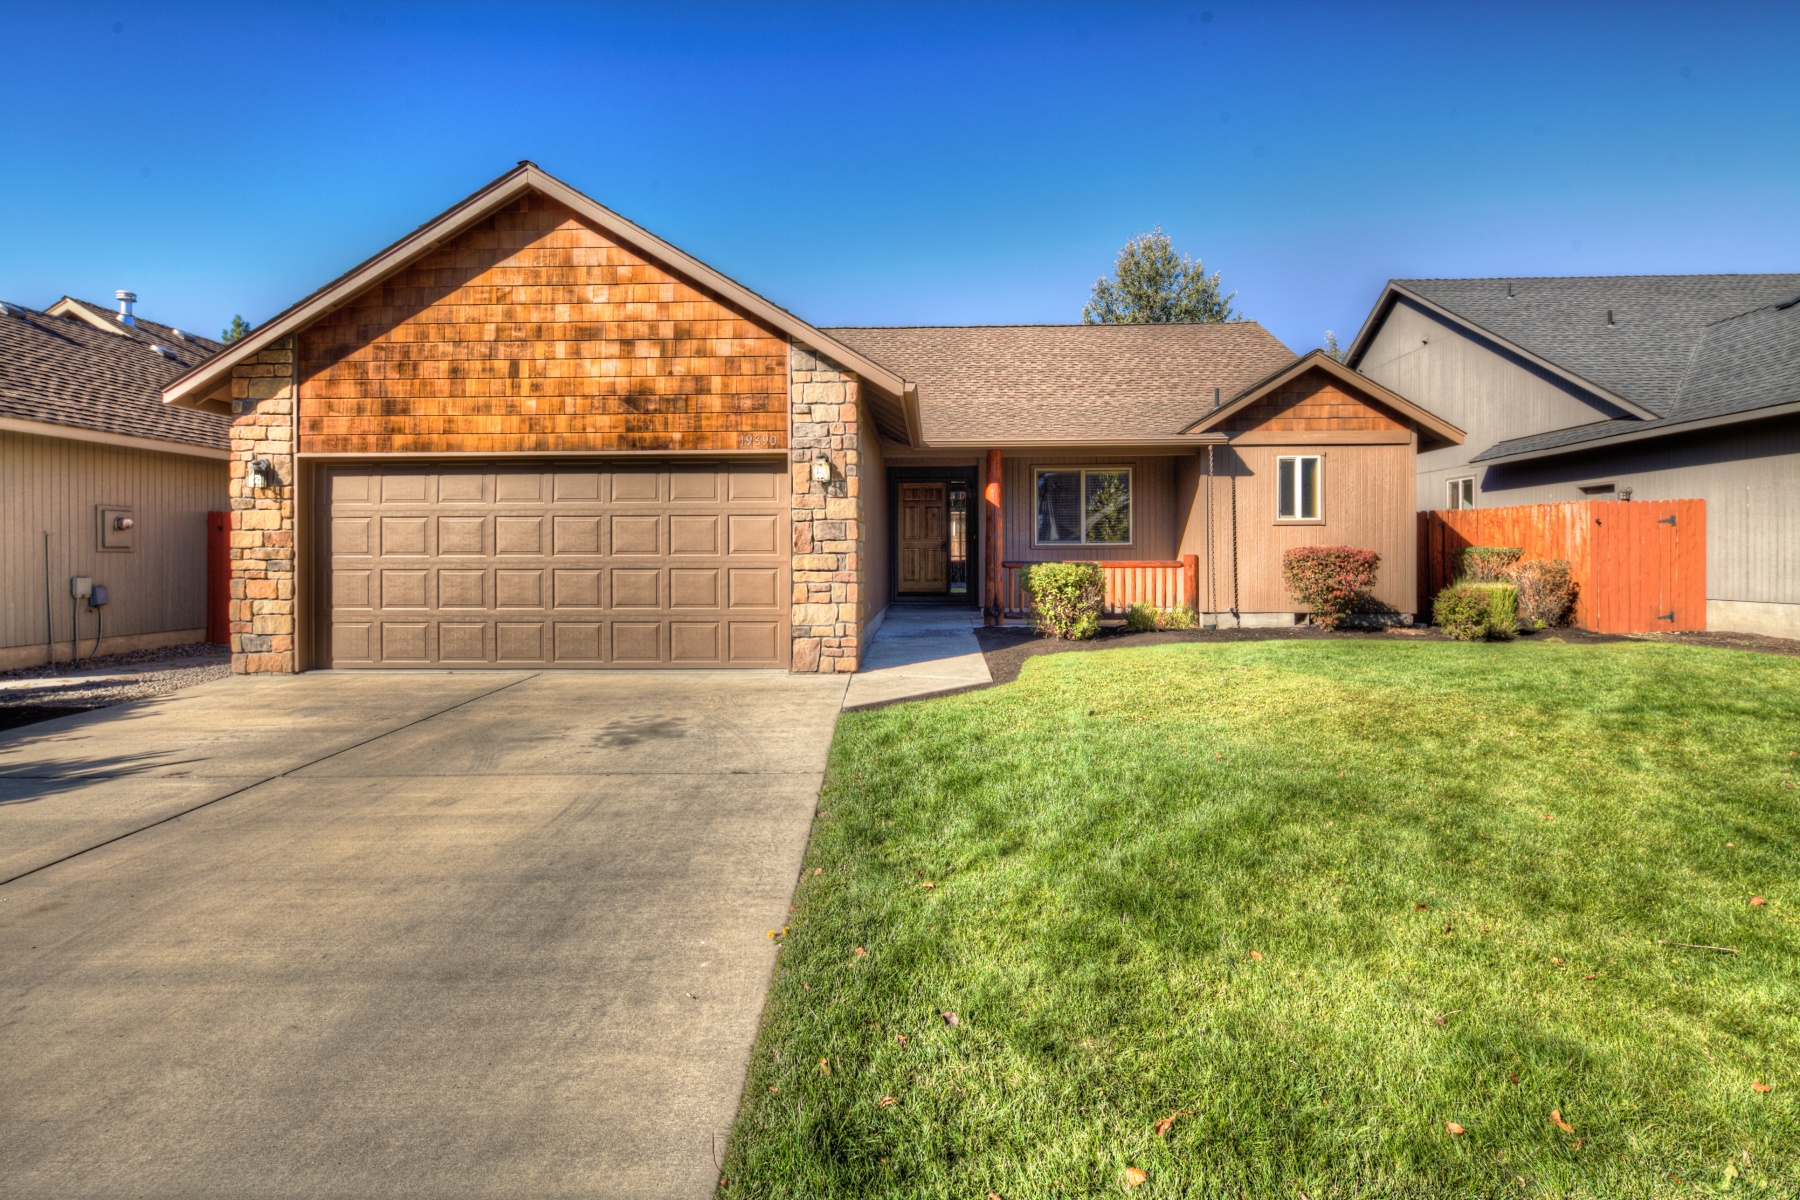 Property For Sale at Wonderful Home & Neighborhood!